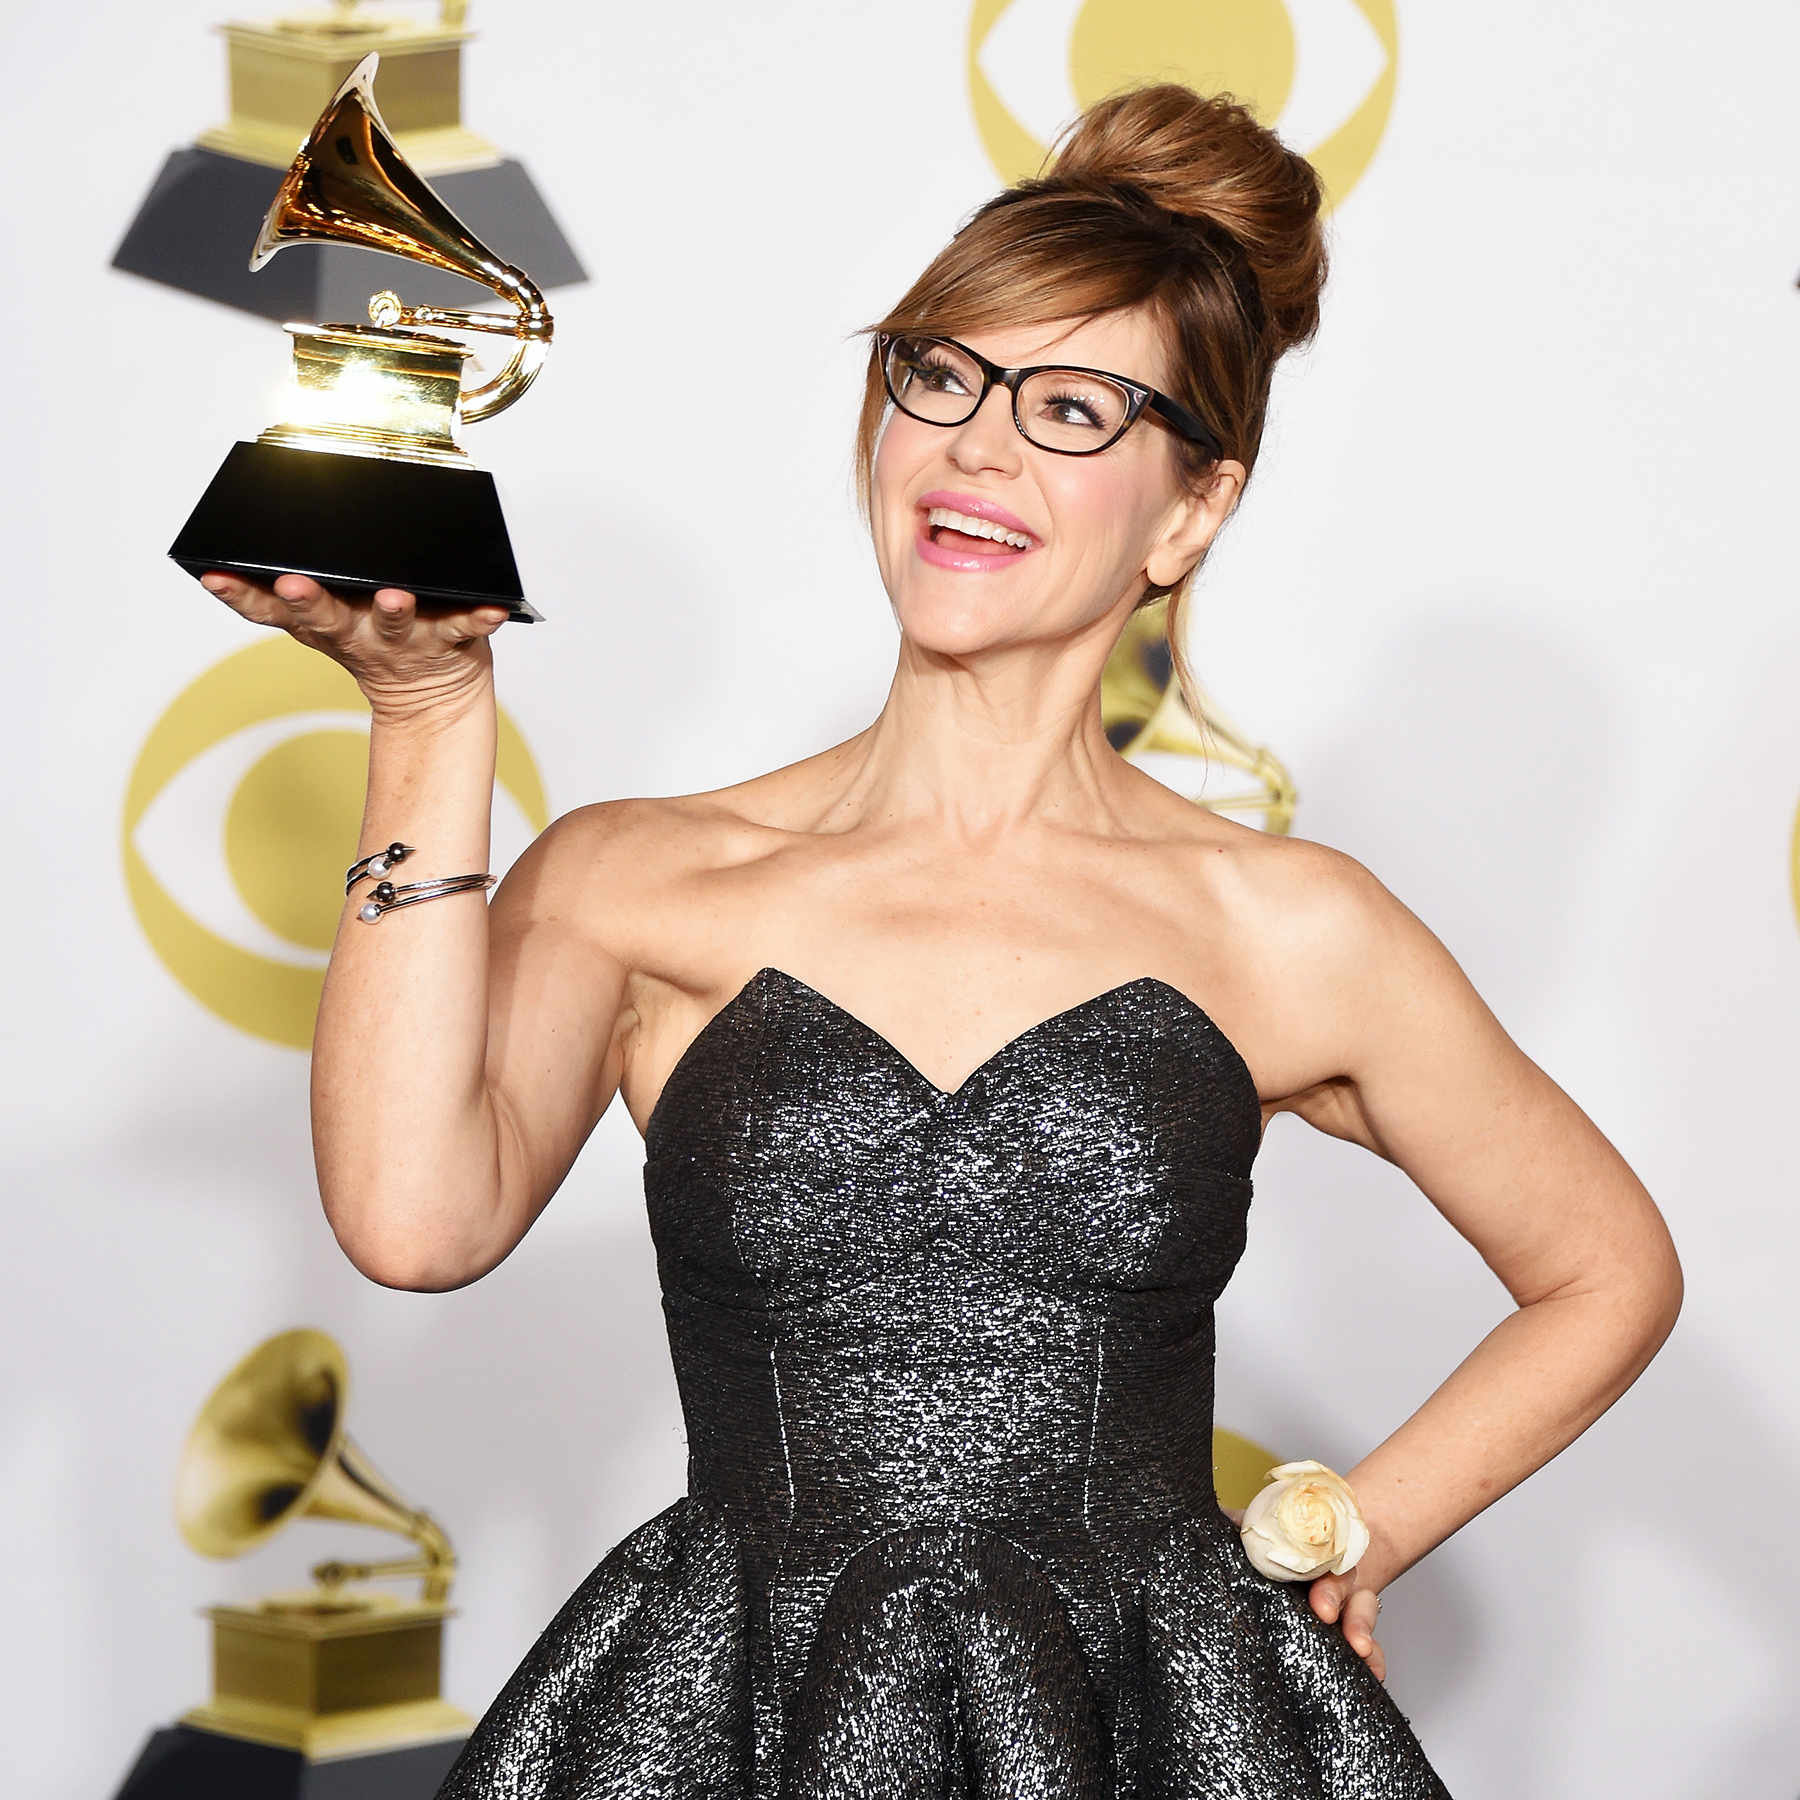 Lisa Loeb Grammys 2018 Best Children's Album winner